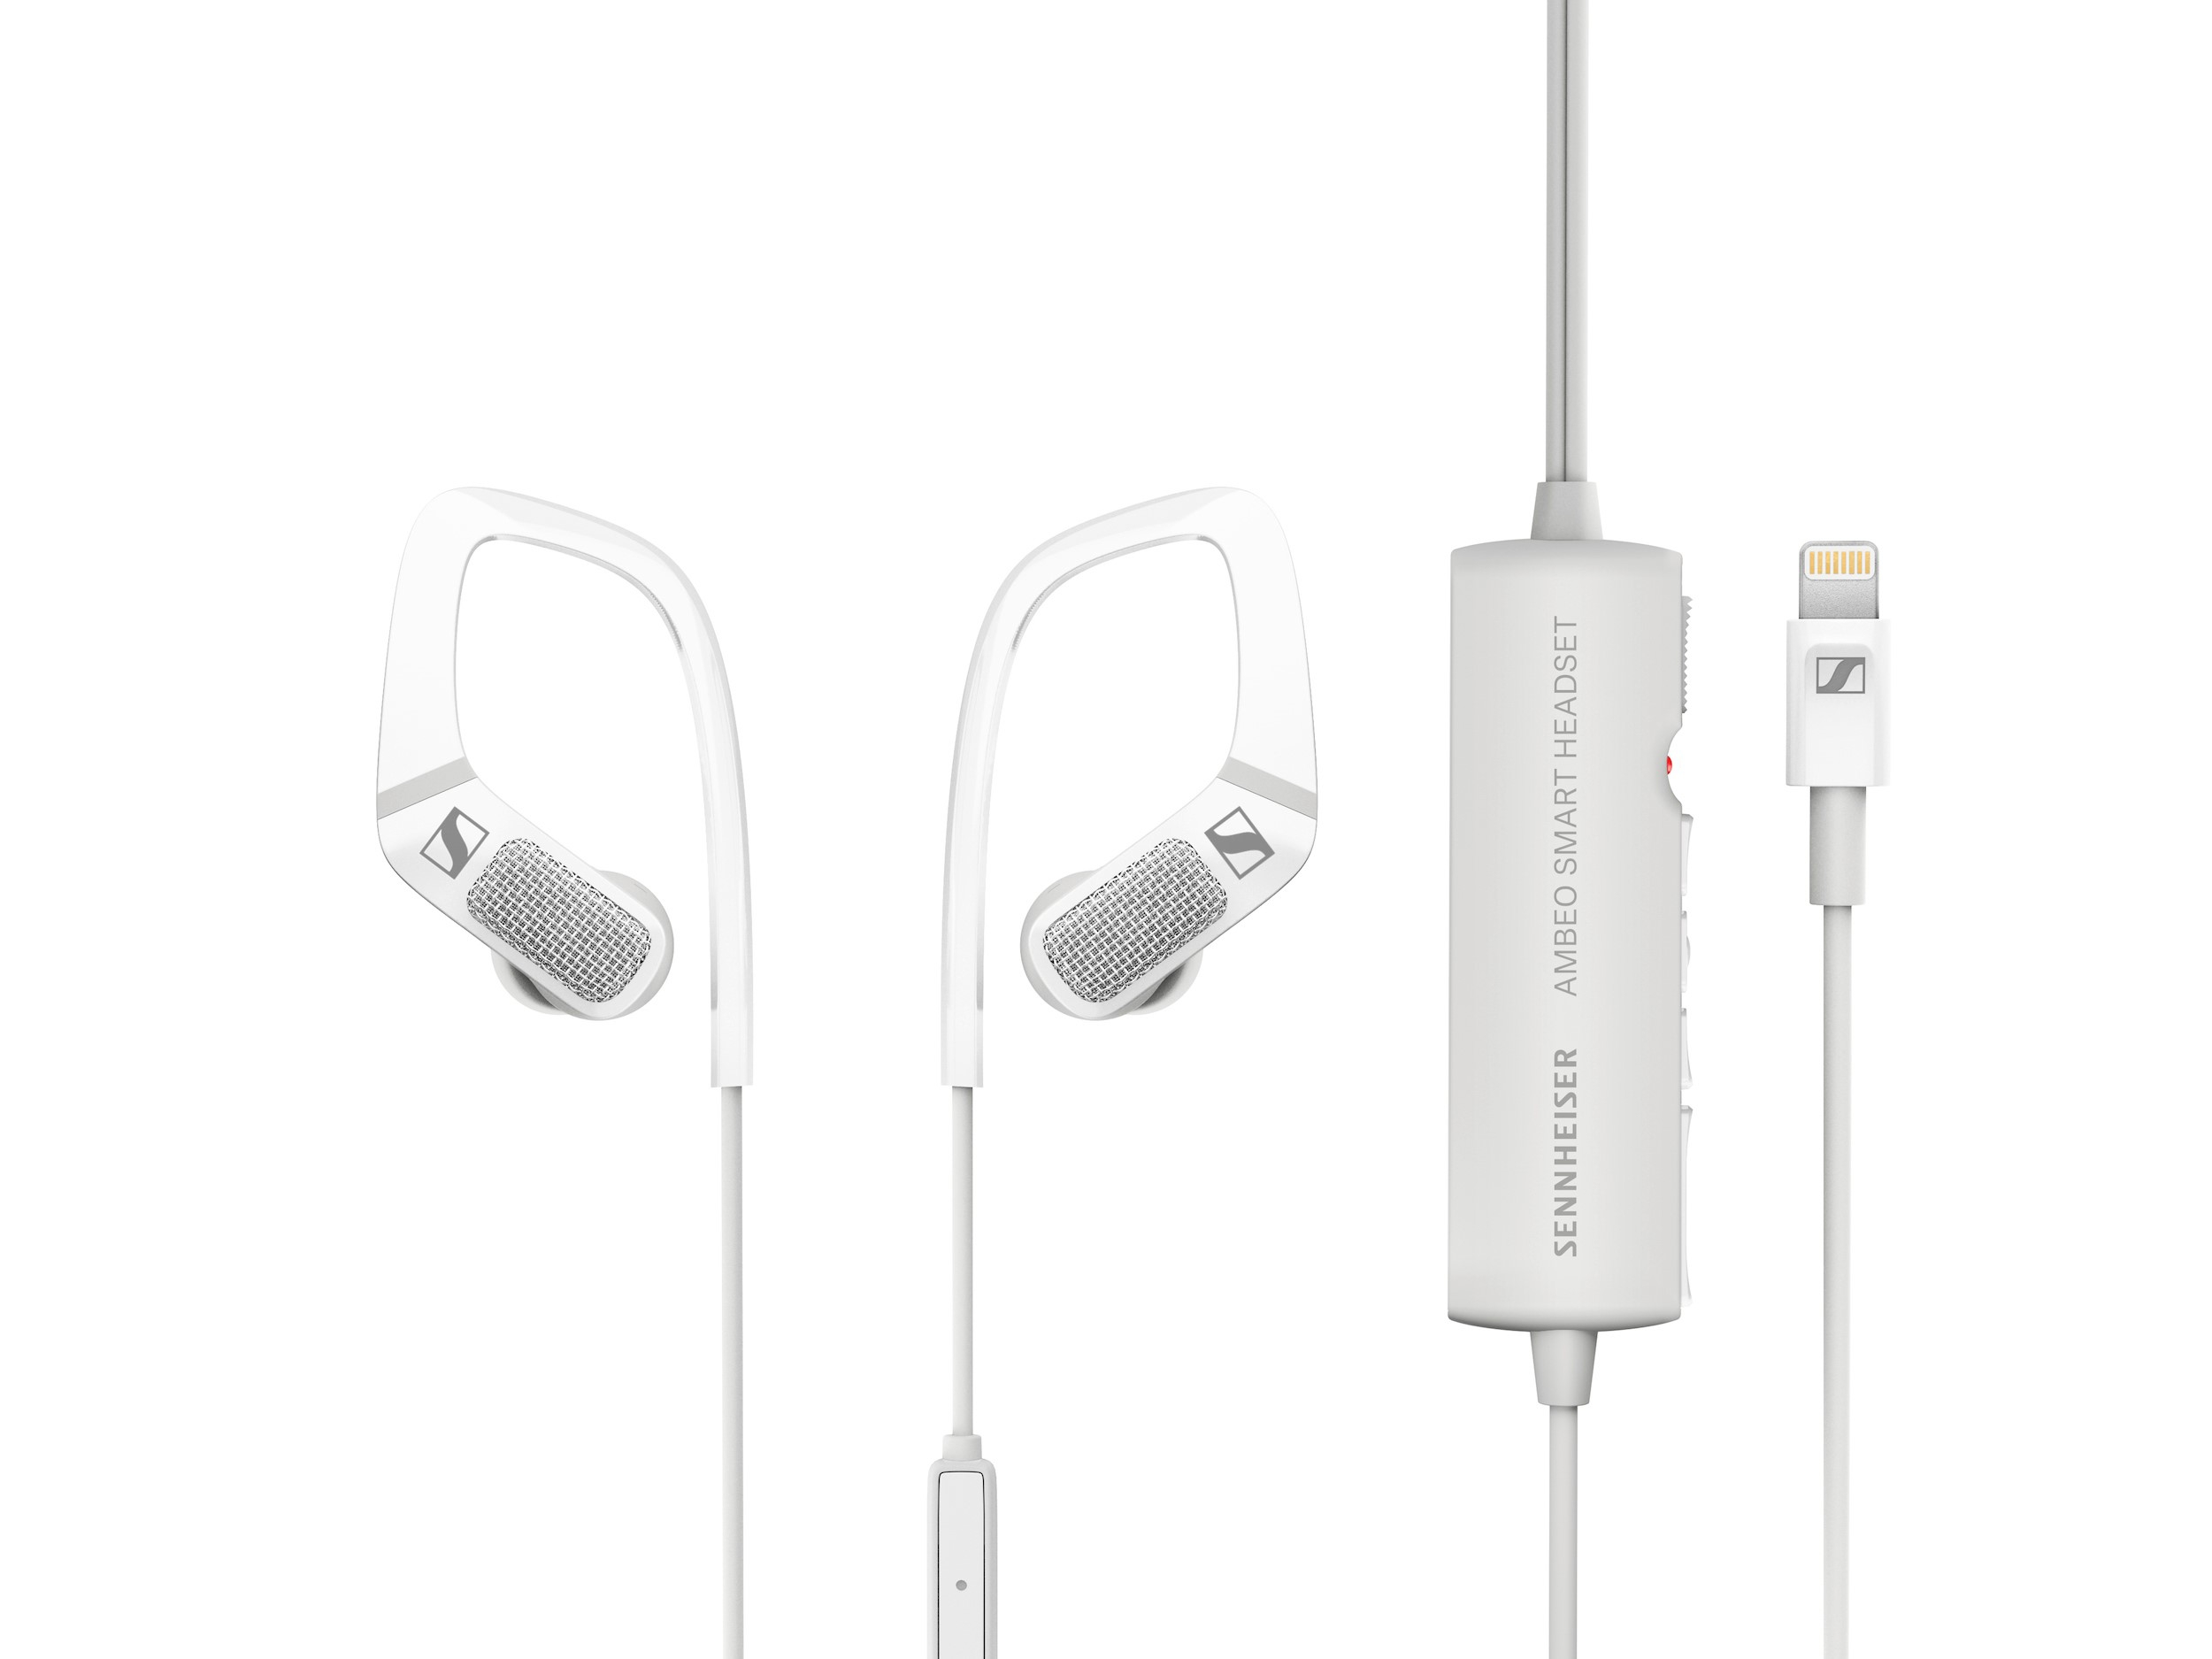 Photo:  Sennheiser AMBEO SMART HEADSET     All rights owned by Sennheiser